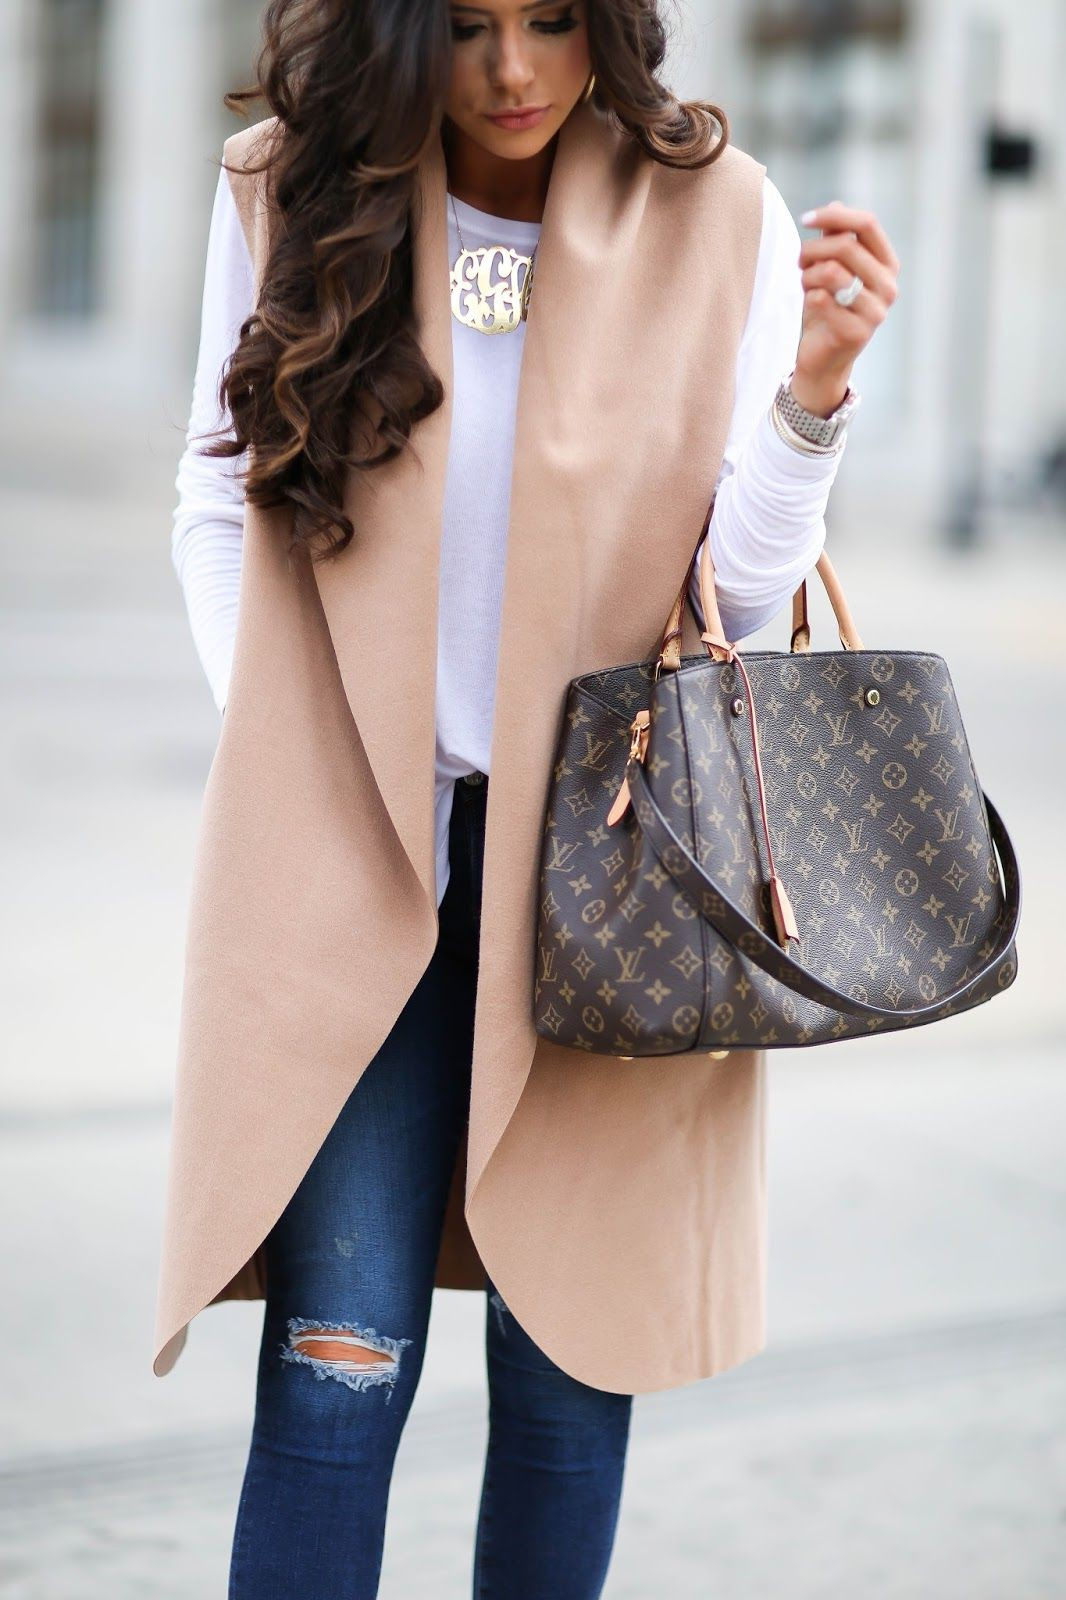 Louis vuitton montaigne outfit